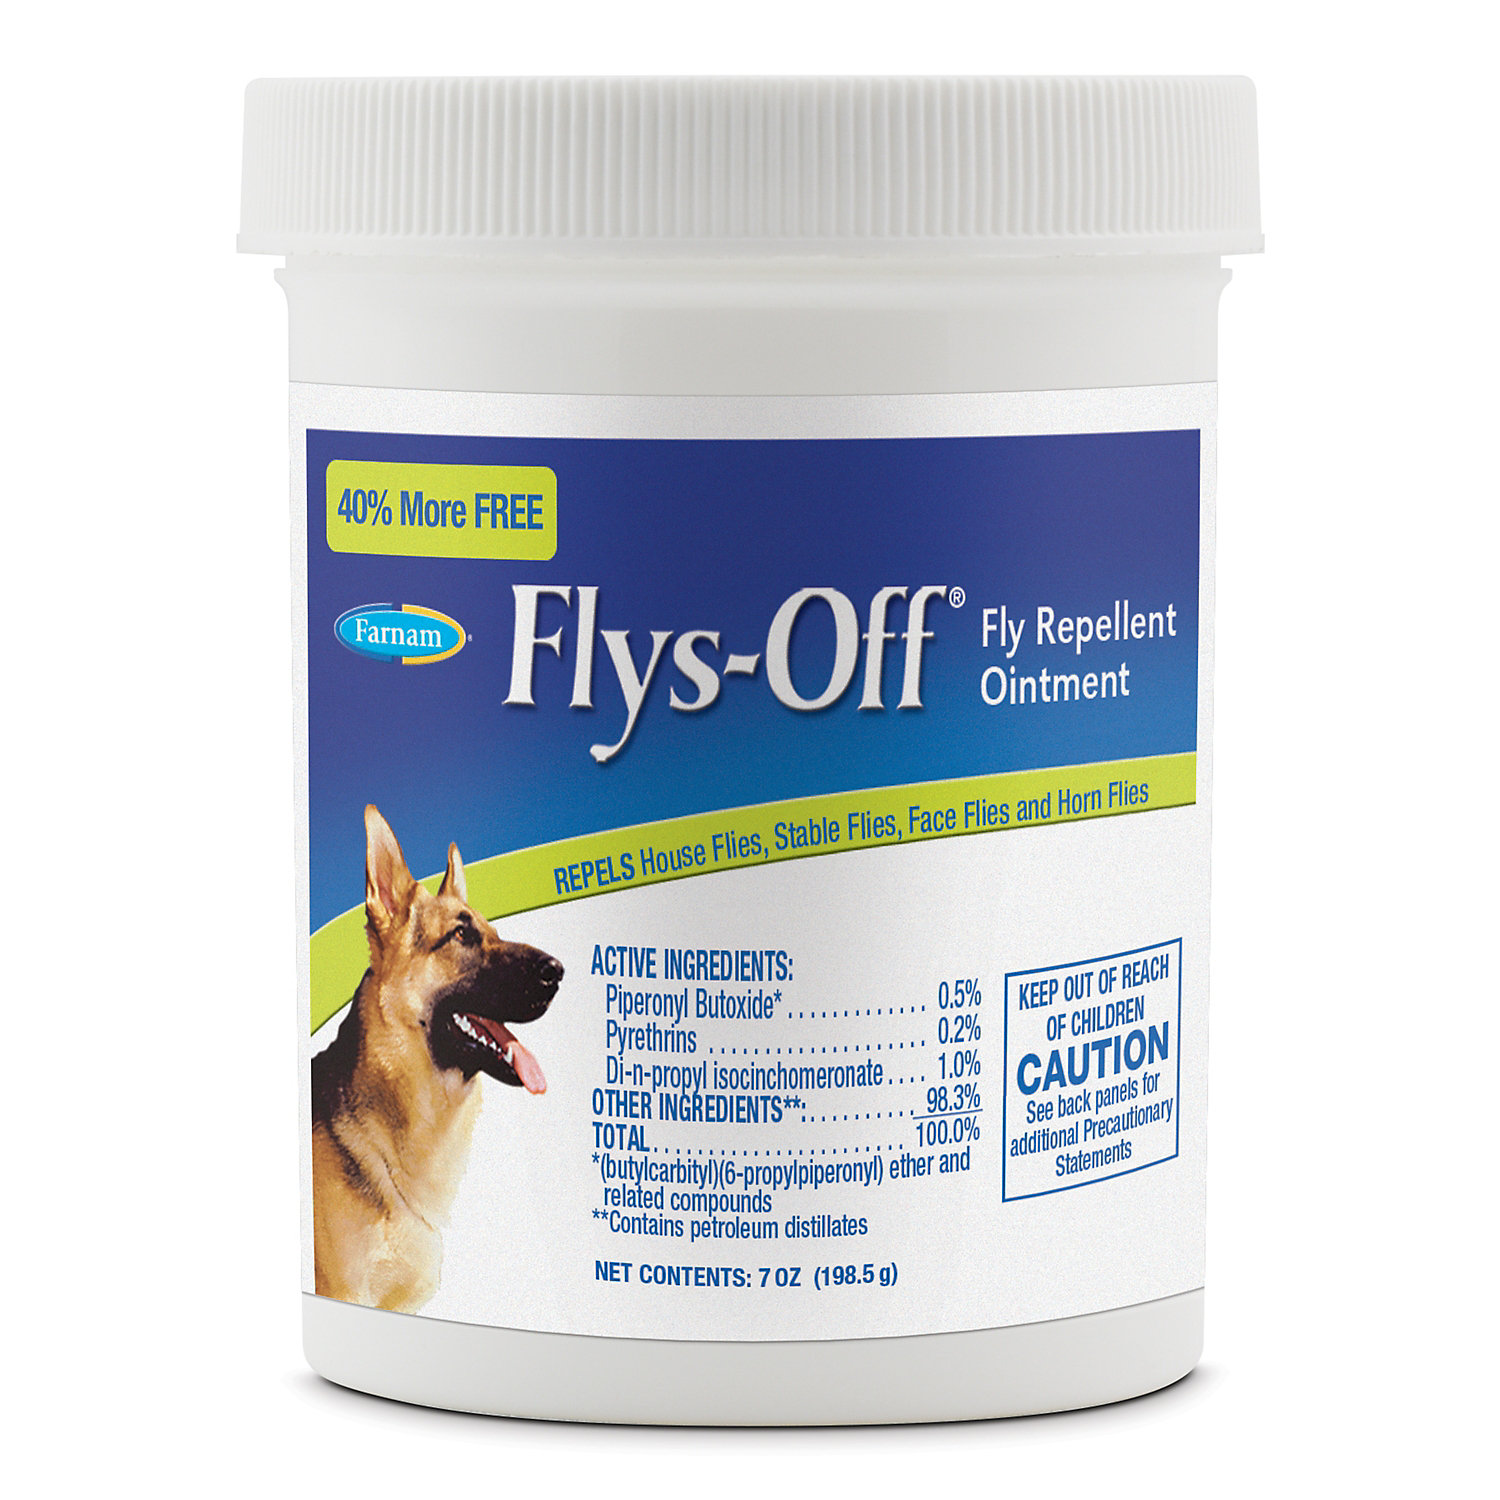 Image of Farnam Flys-Off Fly Repellent Ointment for Wounds & Sores for Dogs